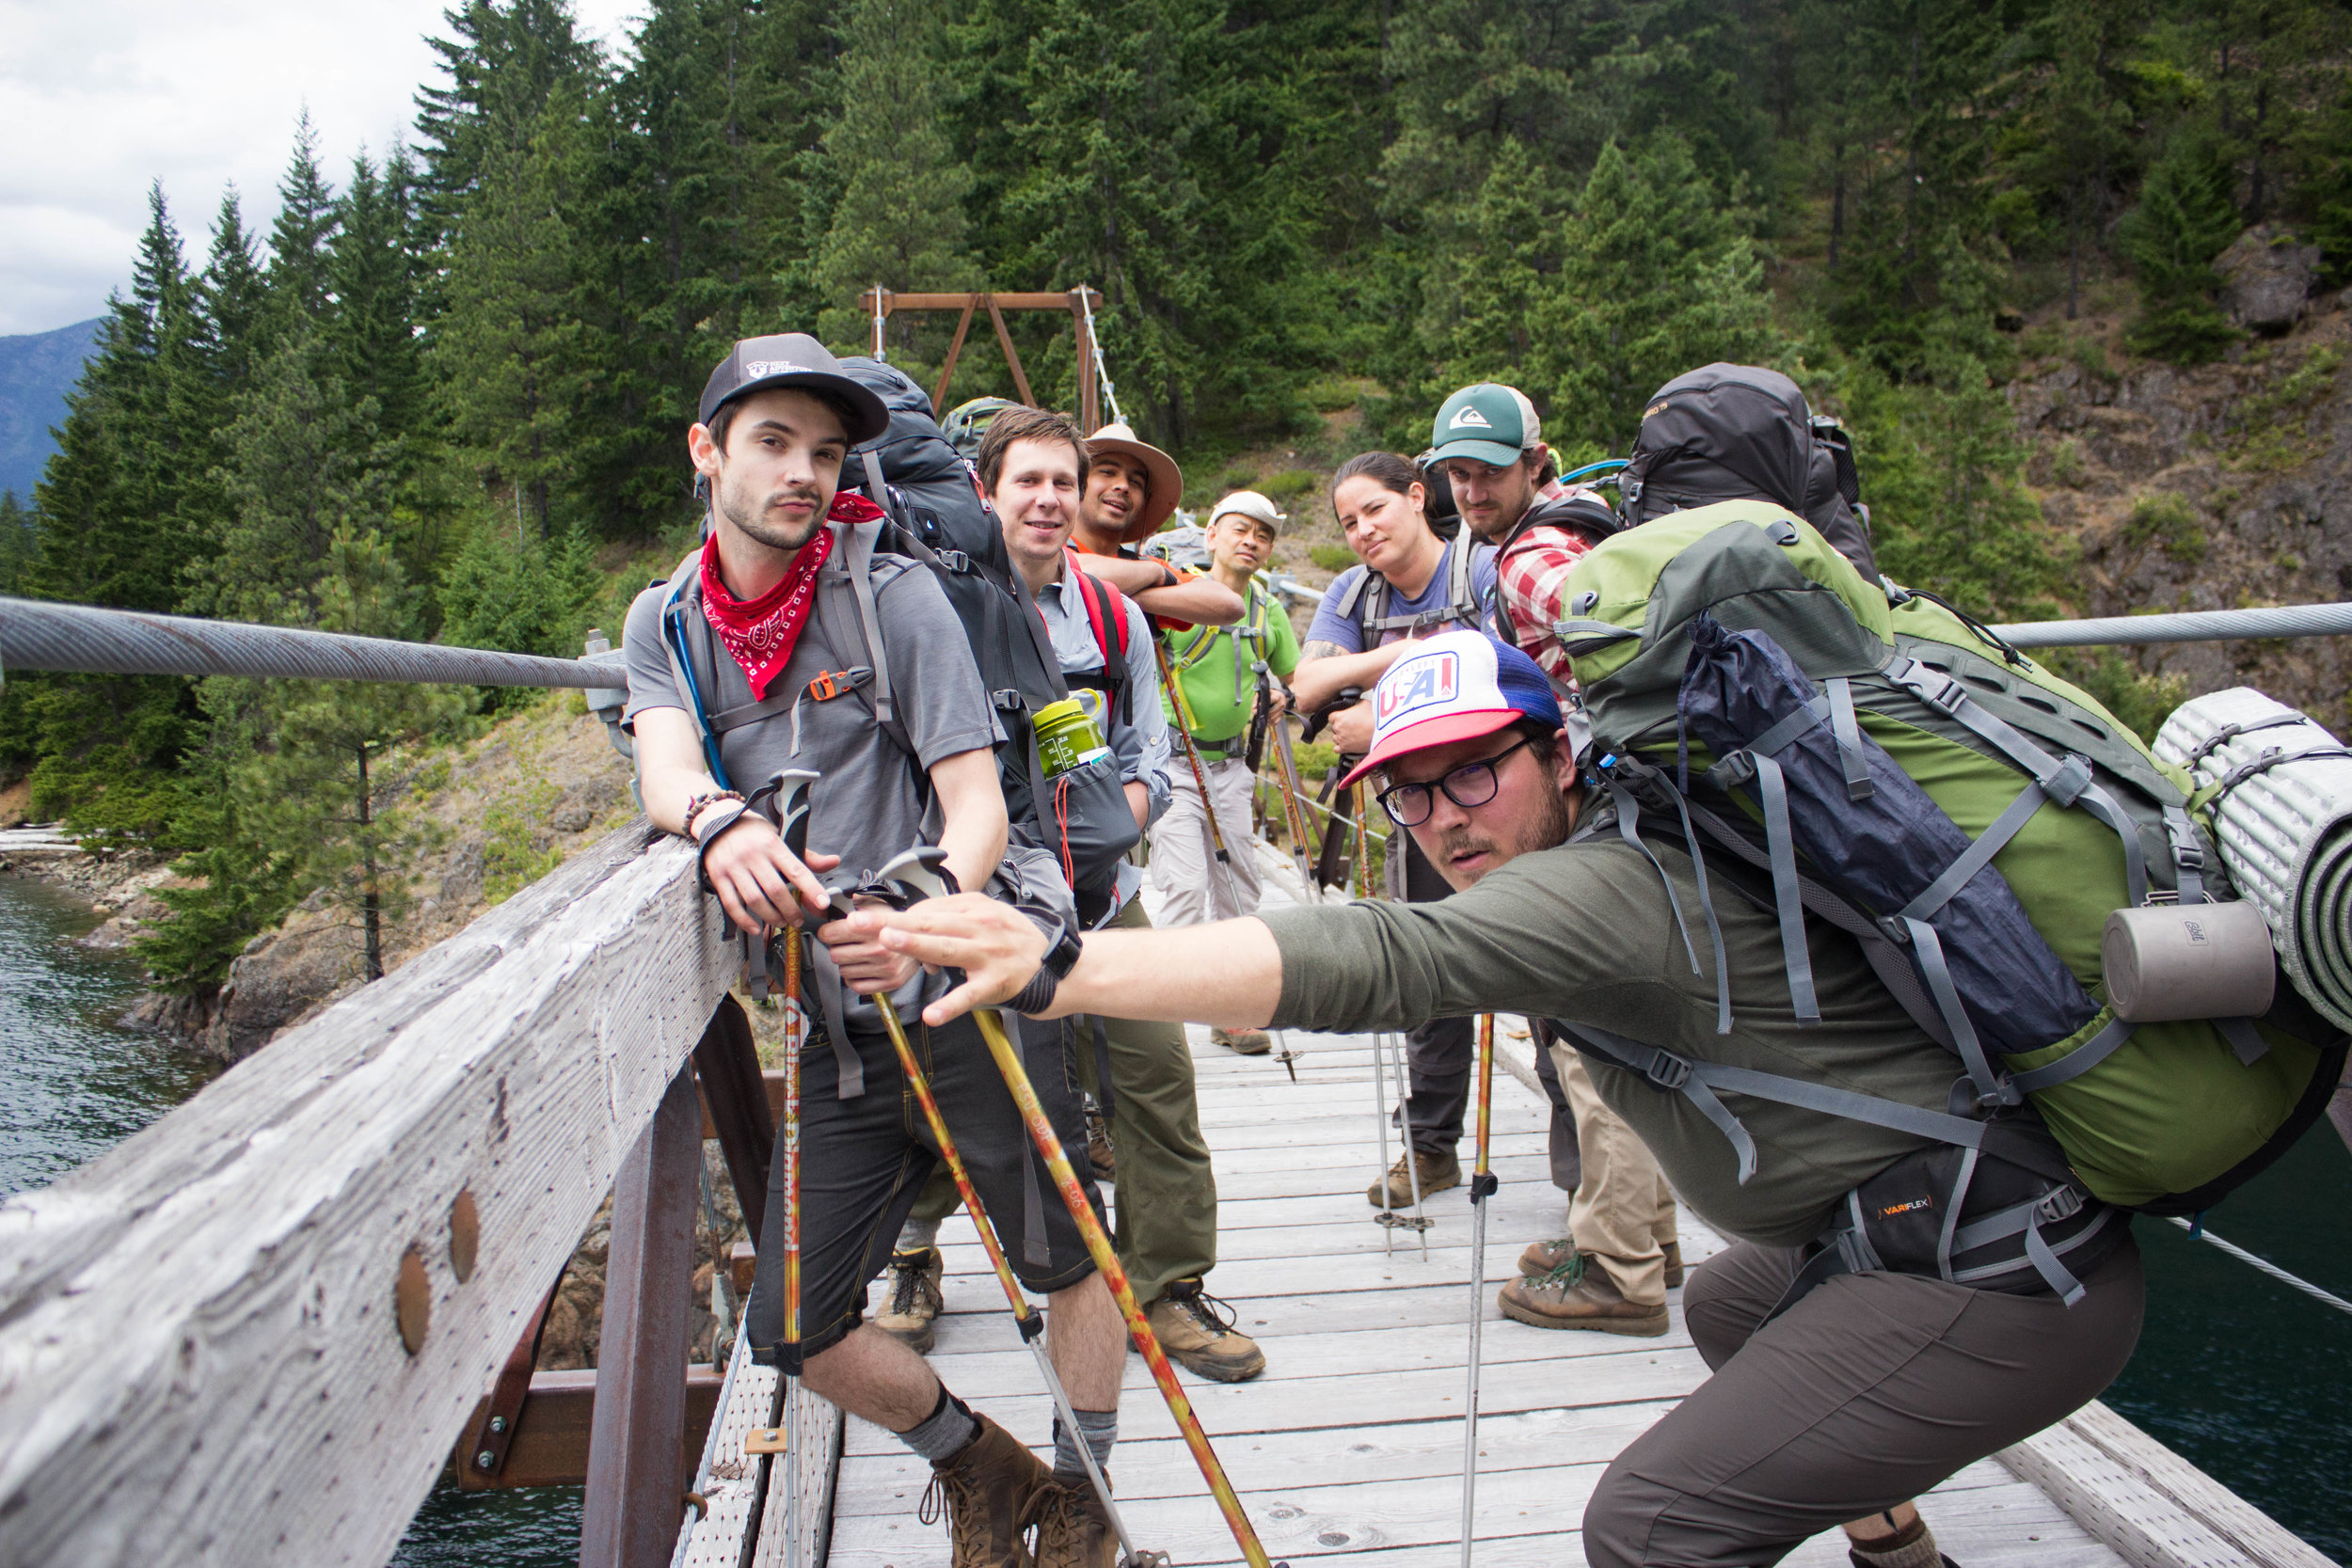 Trekking through the NORTH CASCADES - Twelve individuals, 30 miles through the woods, surrounded by glaciers and wildlife. A trip that transformed strangers into friends.